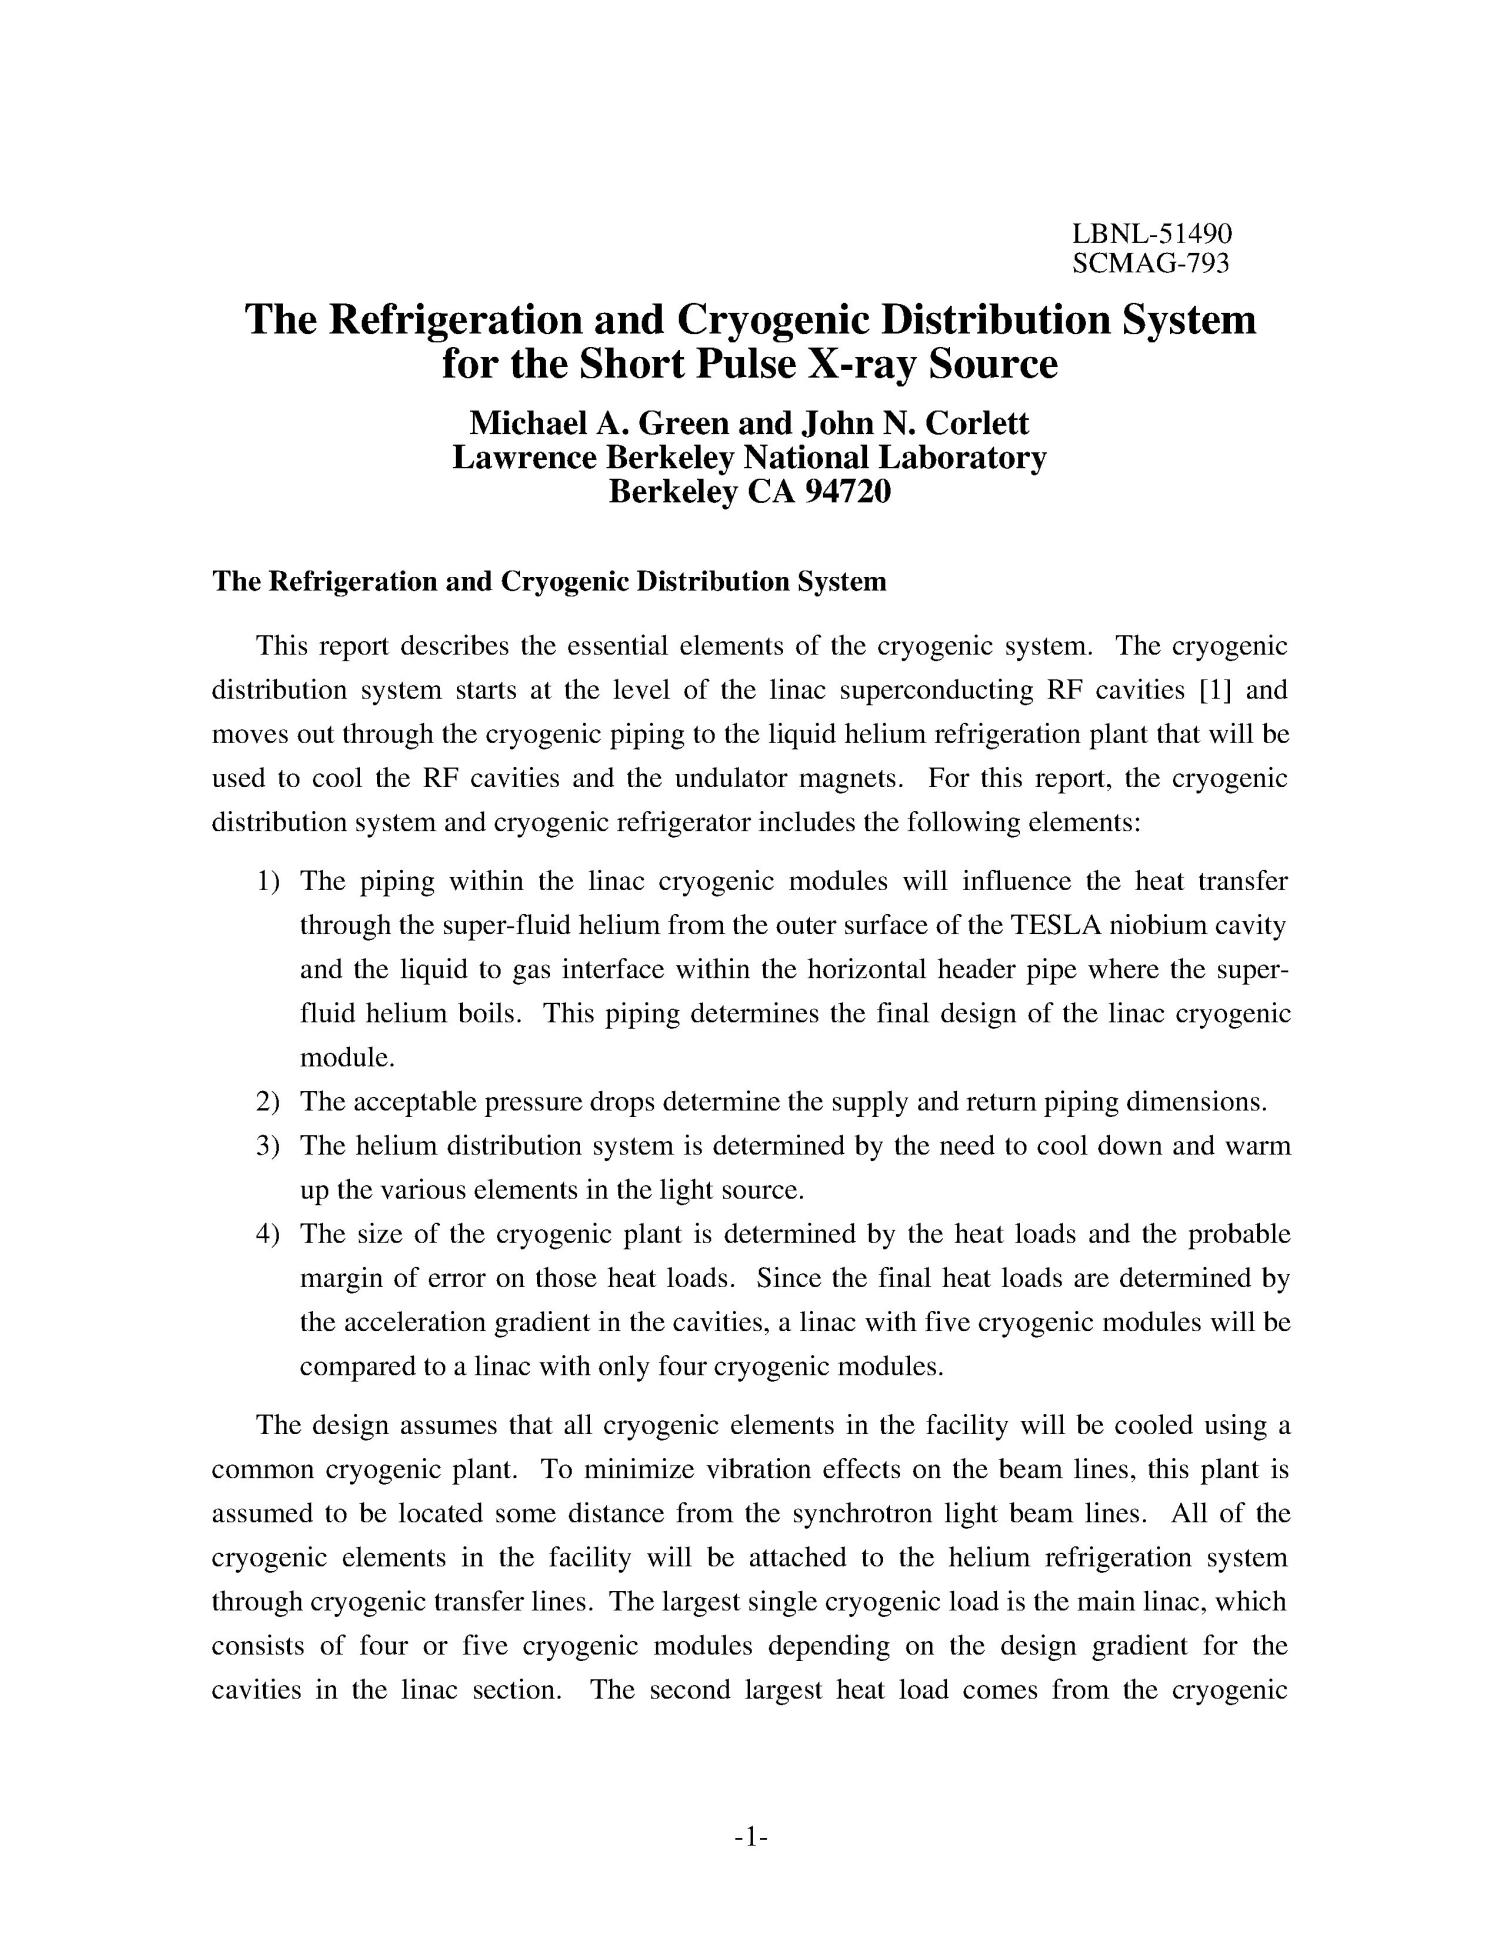 The refrigeration and cryogenic distribution system for the shortpulse x-ray source                                                                                                      [Sequence #]: 1 of 16